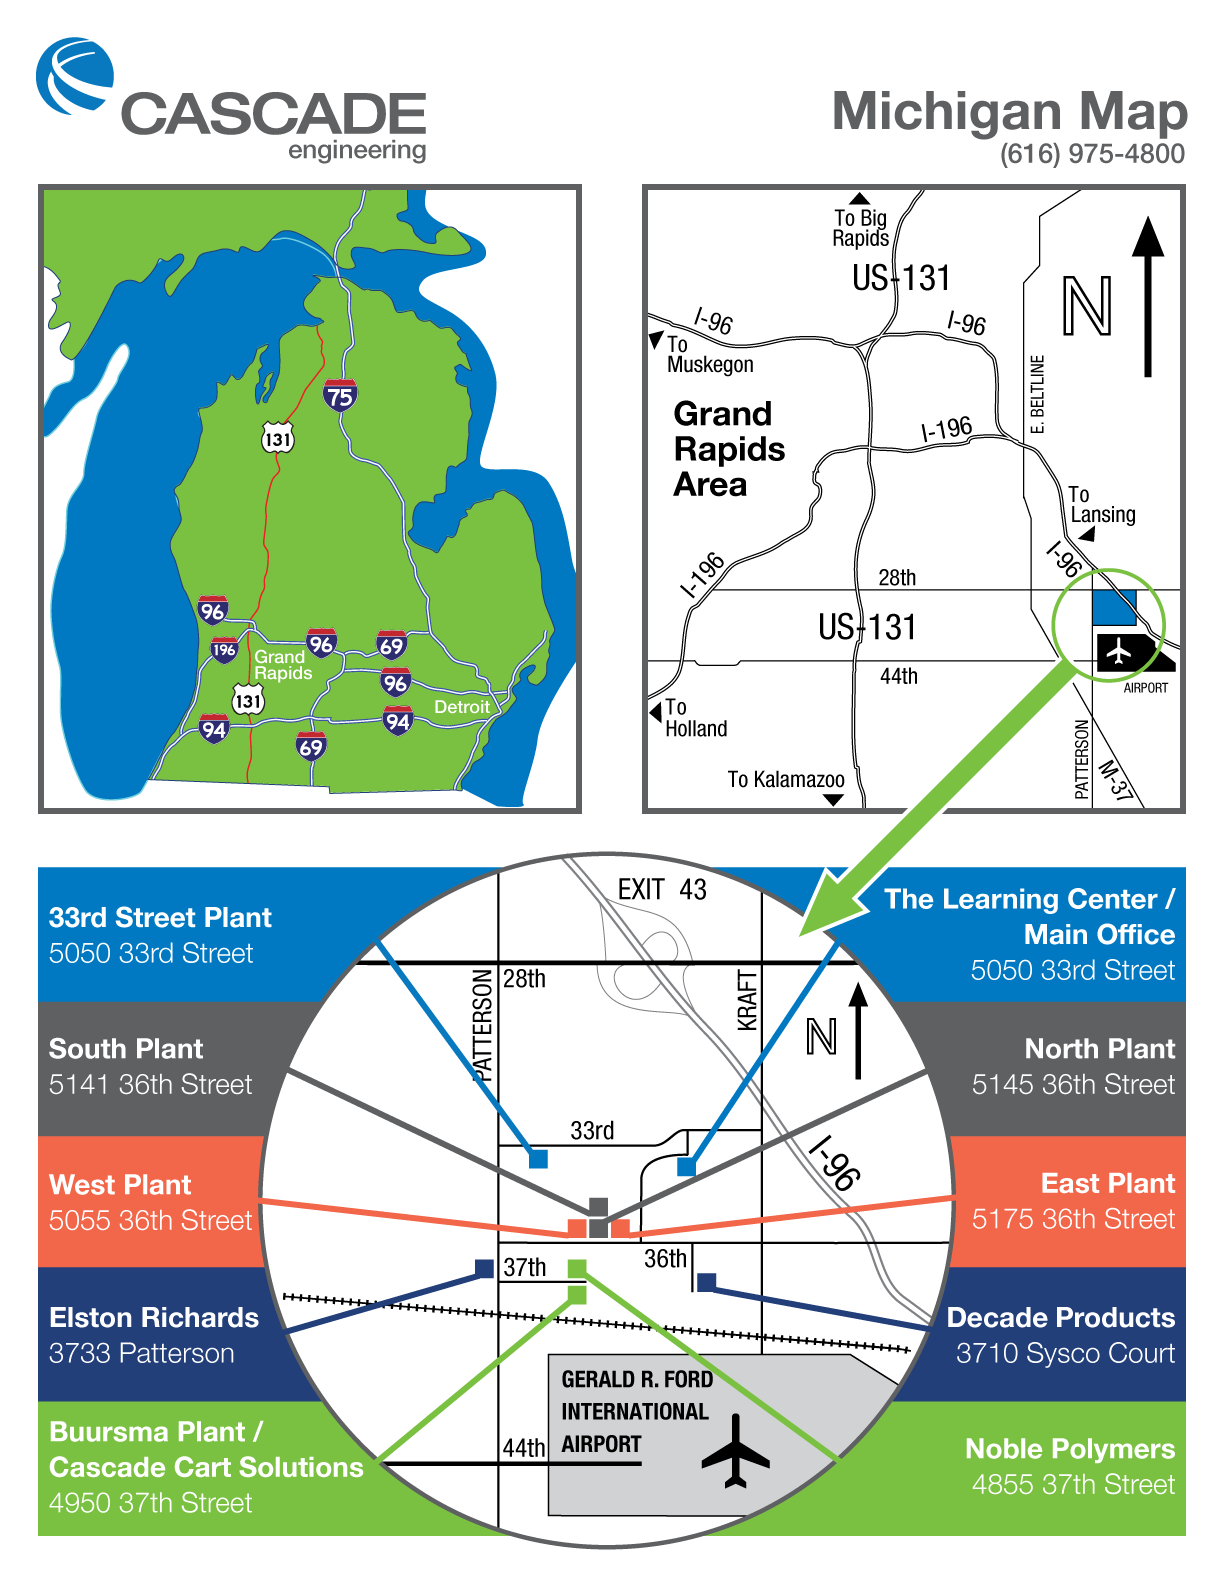 Cascade Engineering Grand Rapids Campus Map